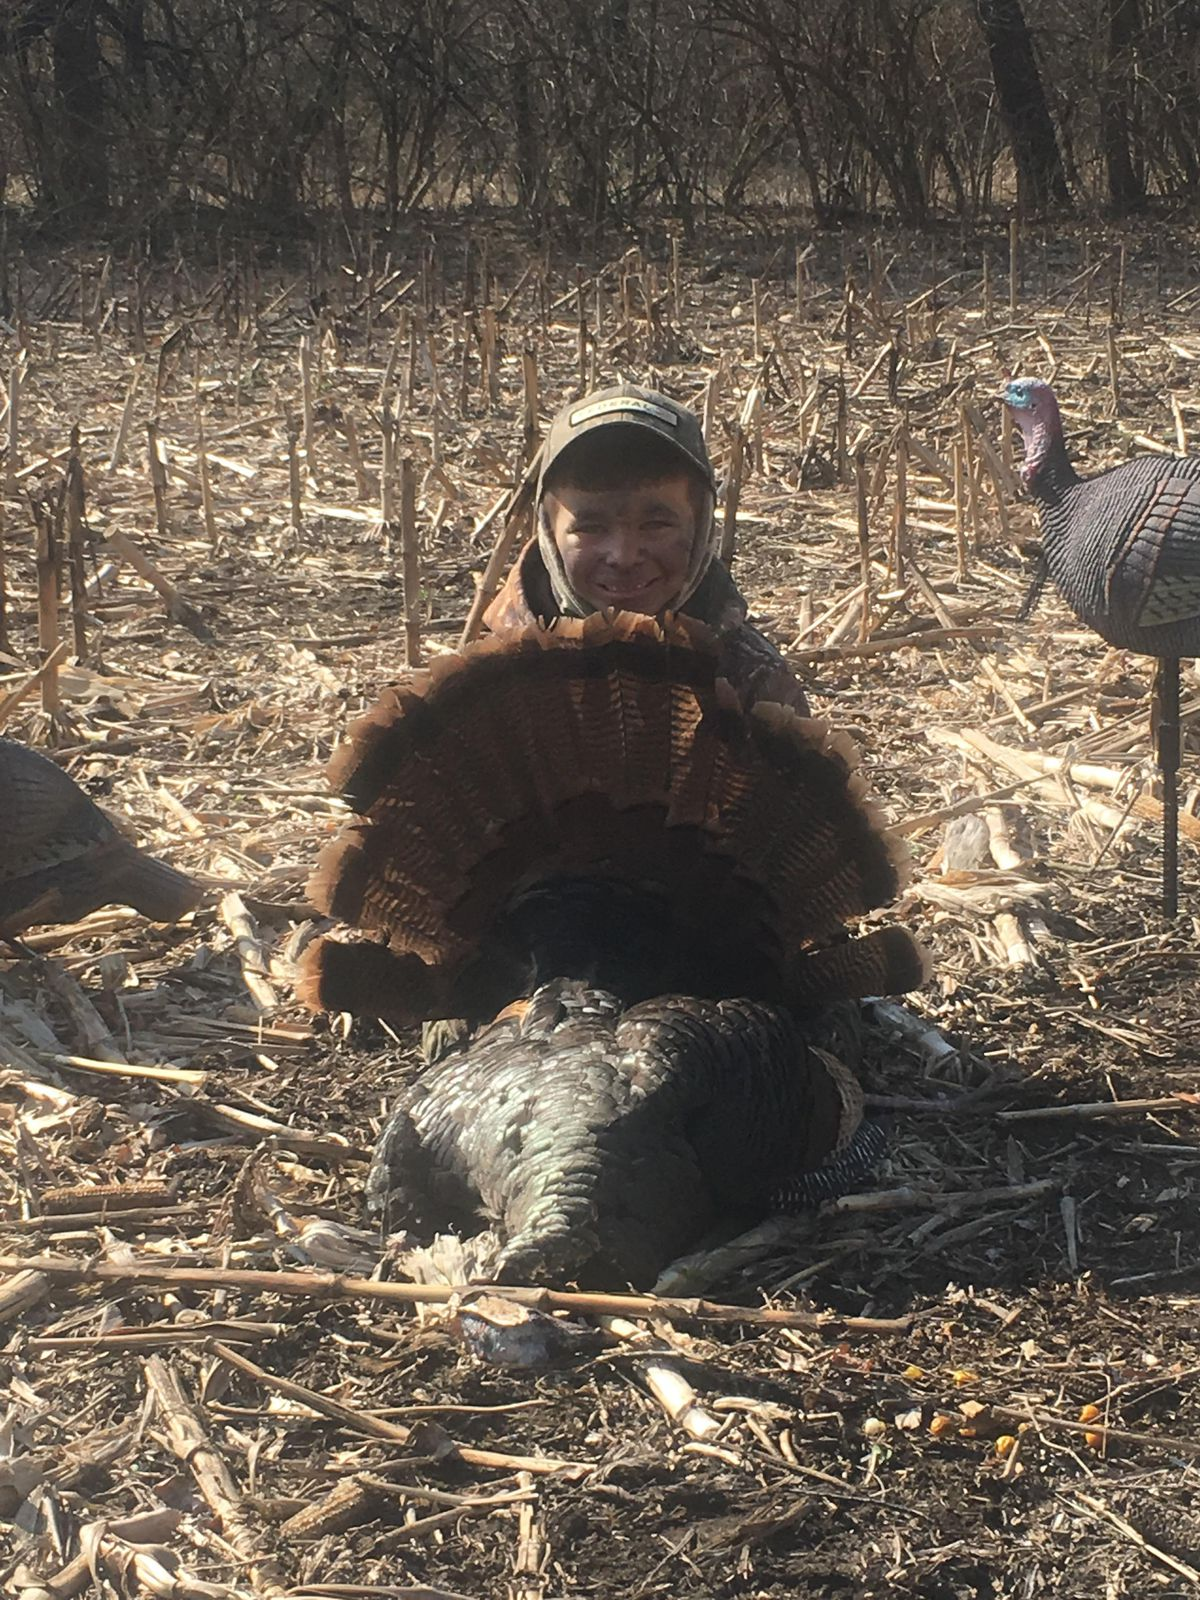 Another view of Tucker Stobaugh in the field with decoys.<br>Provided